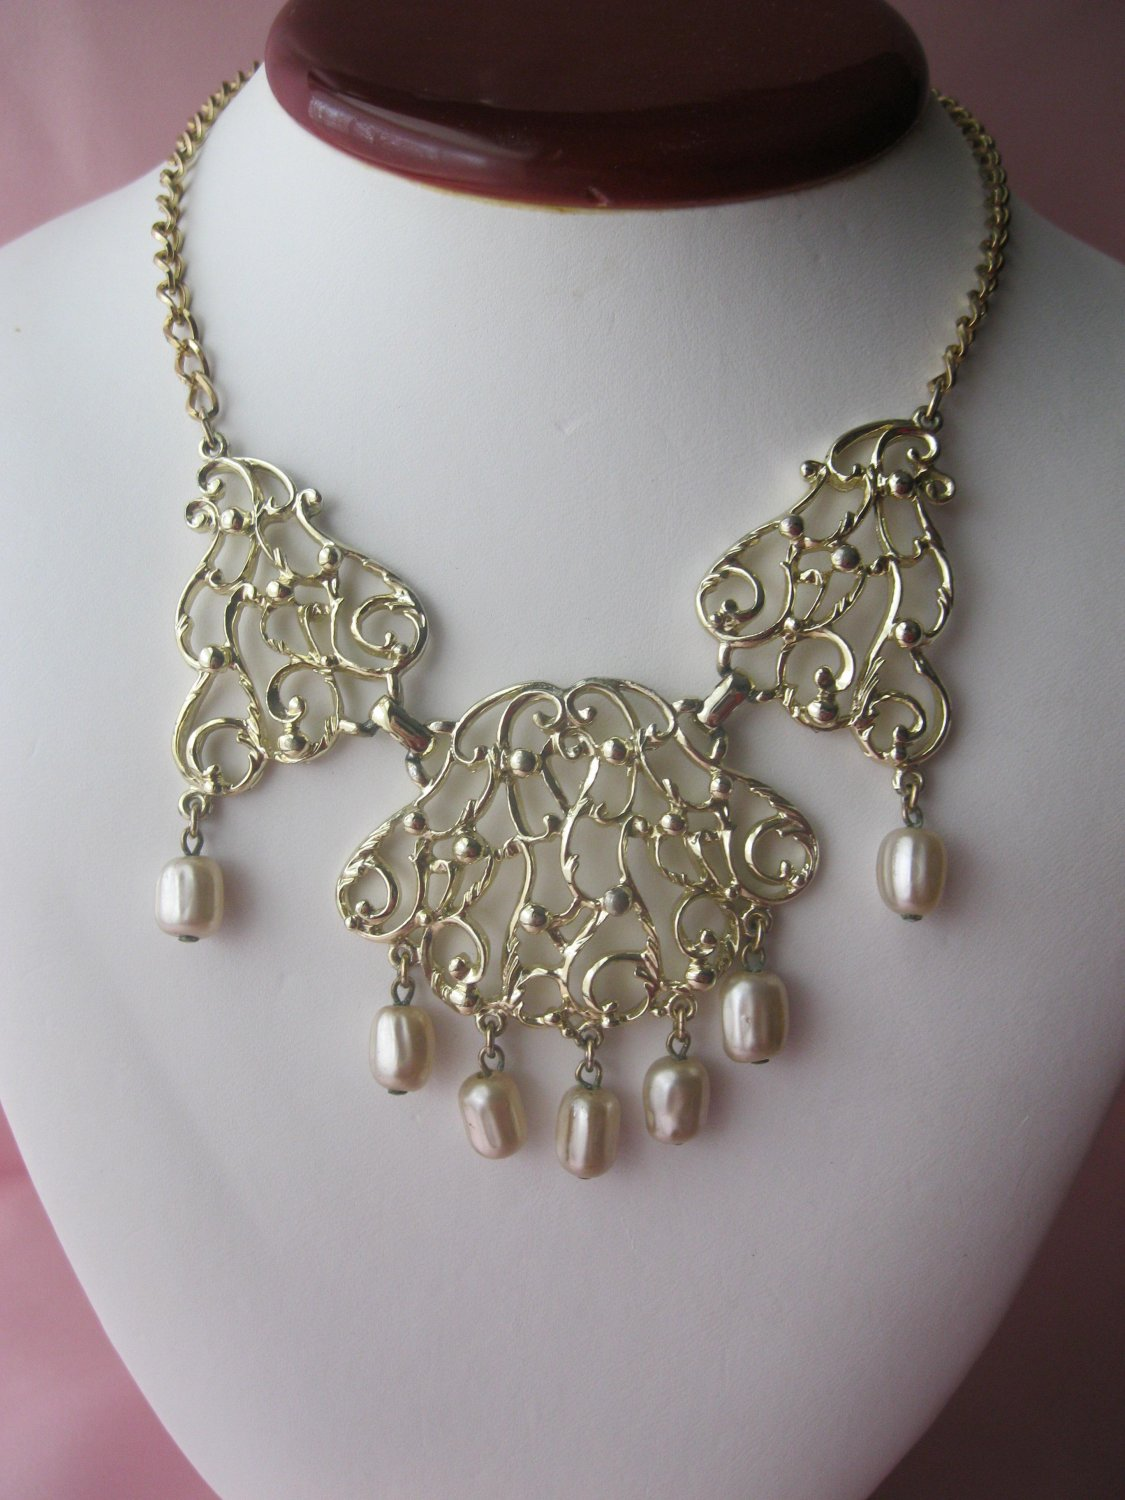 Vintage Sarah Coventry Necklace - Venetian lace